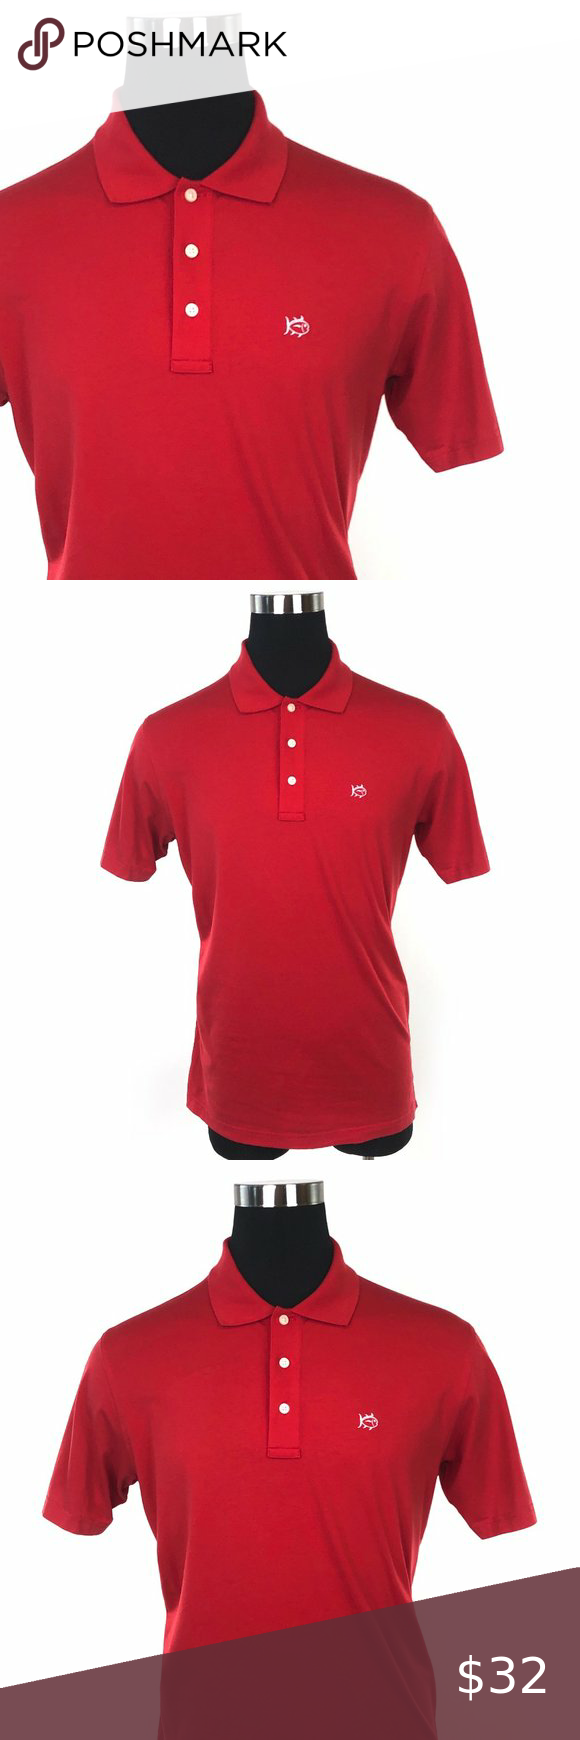 Southern Tide Sport Red Polo Shirt G14 In 2020 Red Polo Shirt Shirts Polo Shirt